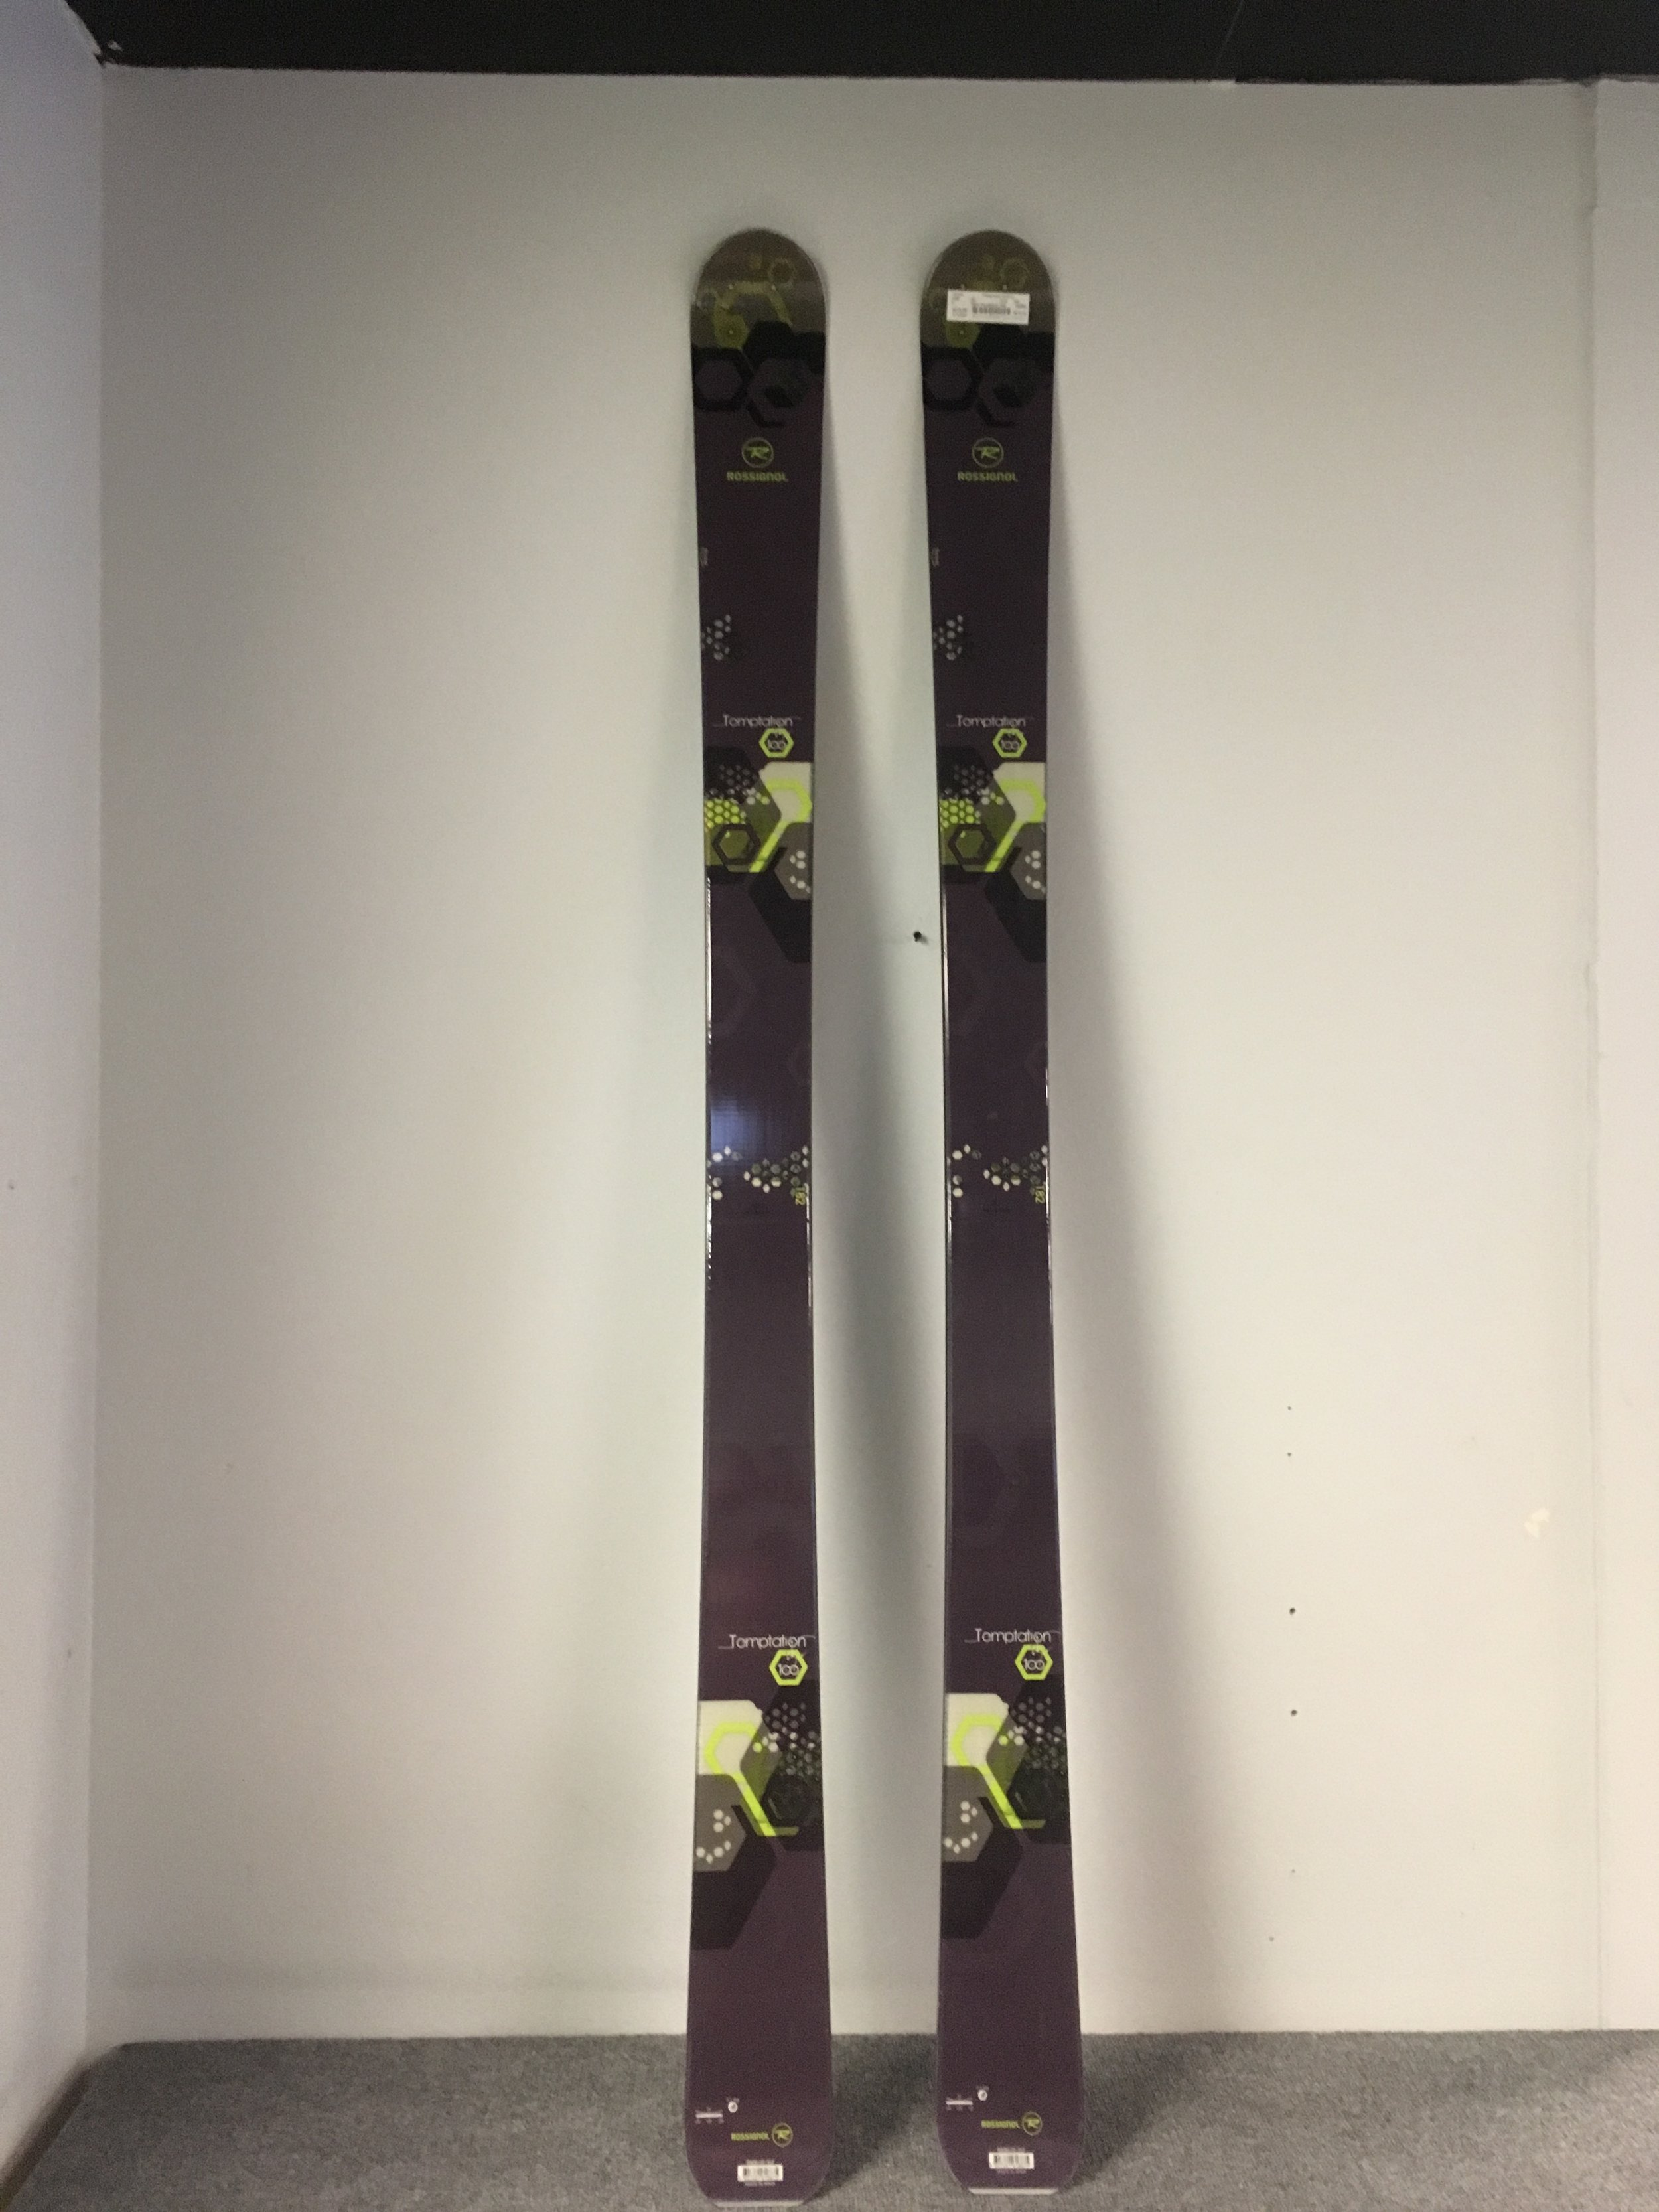 Get your carve on with some unmounted 2015 Rossignol Temptation 100's. By combining the 100mm waist with a boat load of camber under foot the Temptation can charge just about anything you throw at it. Original retail was listed at $850 but we can you shredding for $219! The length is 182.